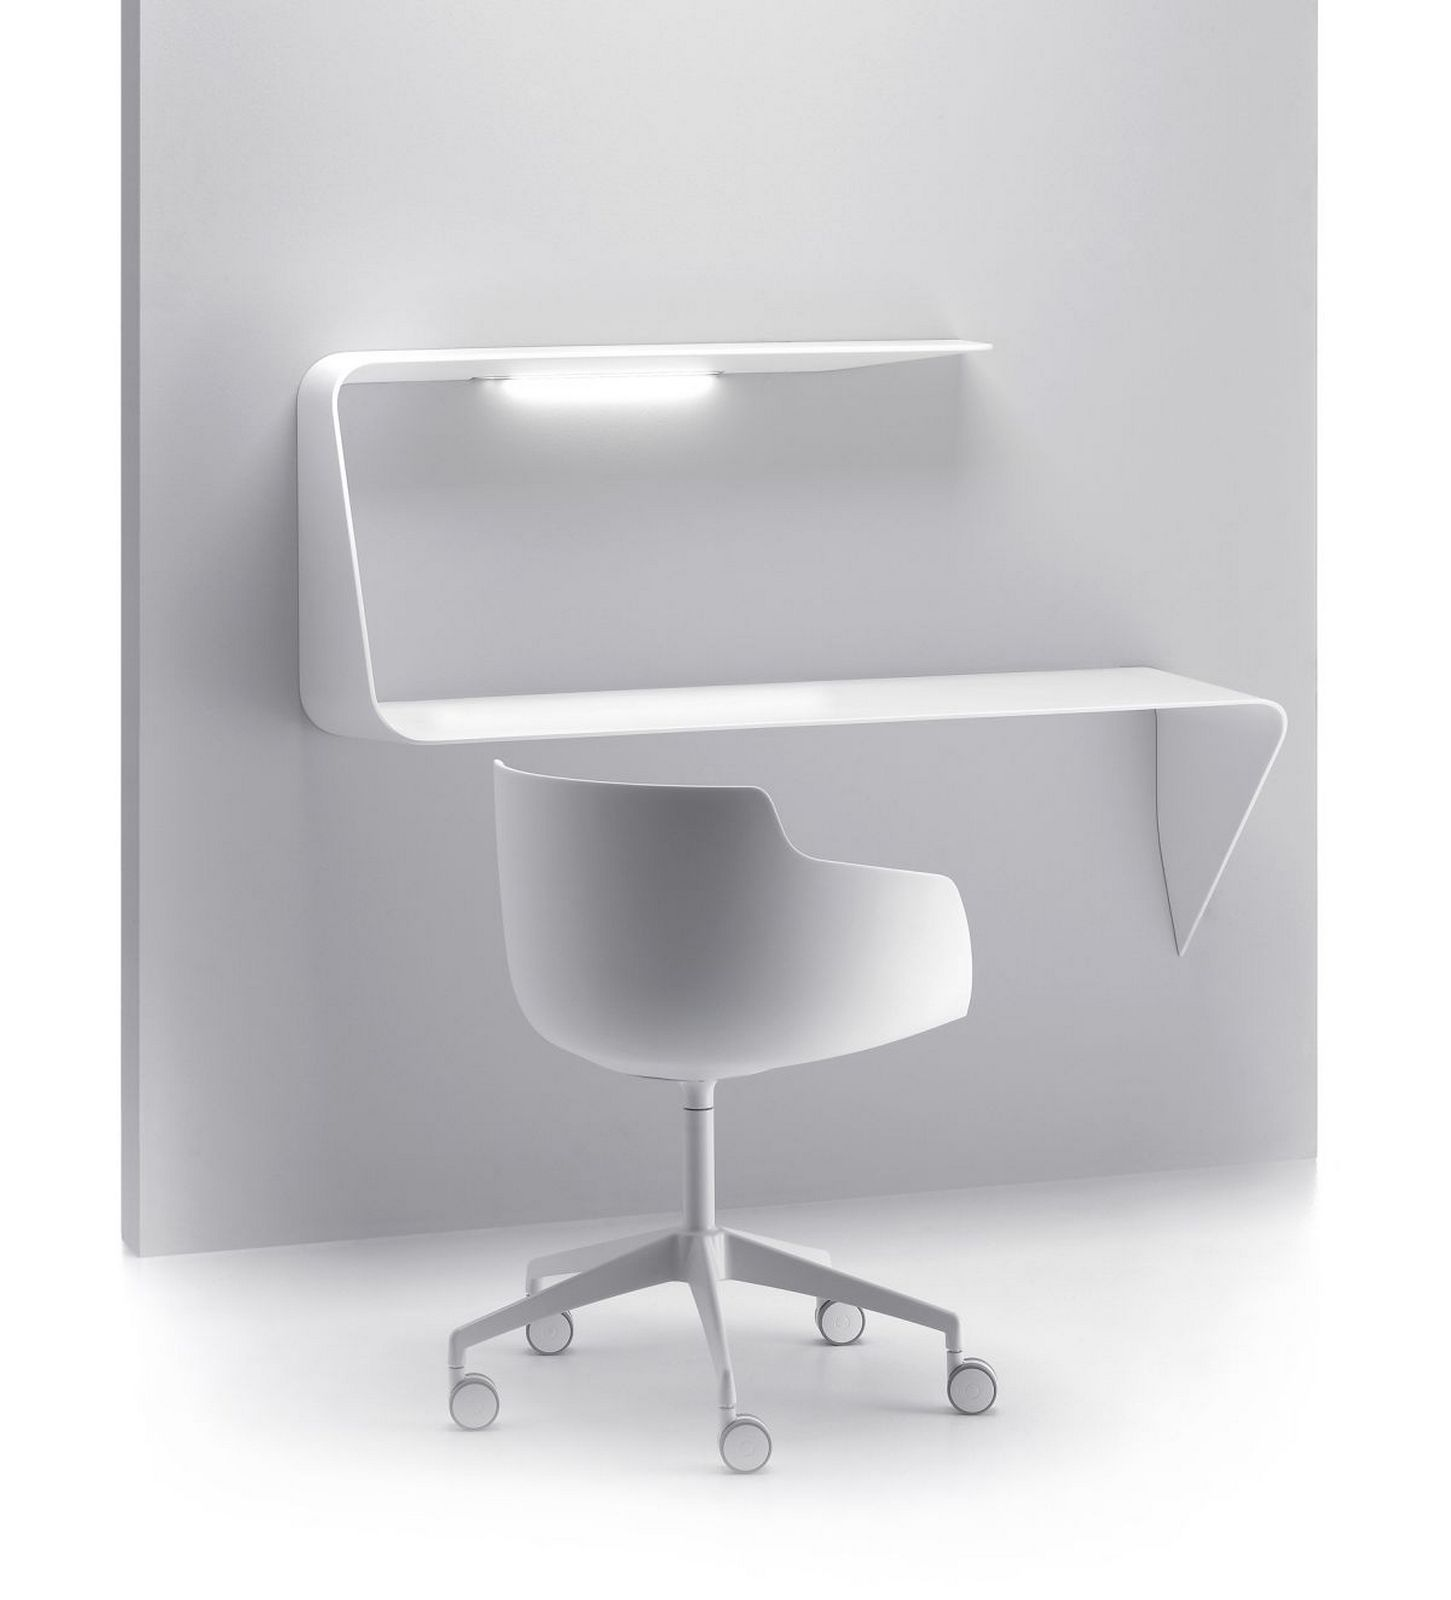 Contemporary-Corner-Computer-Desk-Curtainanthropophagus-2017-With-White-Images-Office-Furniture-Modern-Versatile-Shelf-And-Desks-For-Small-Spaces-Cheap-Home-Designer-Cool